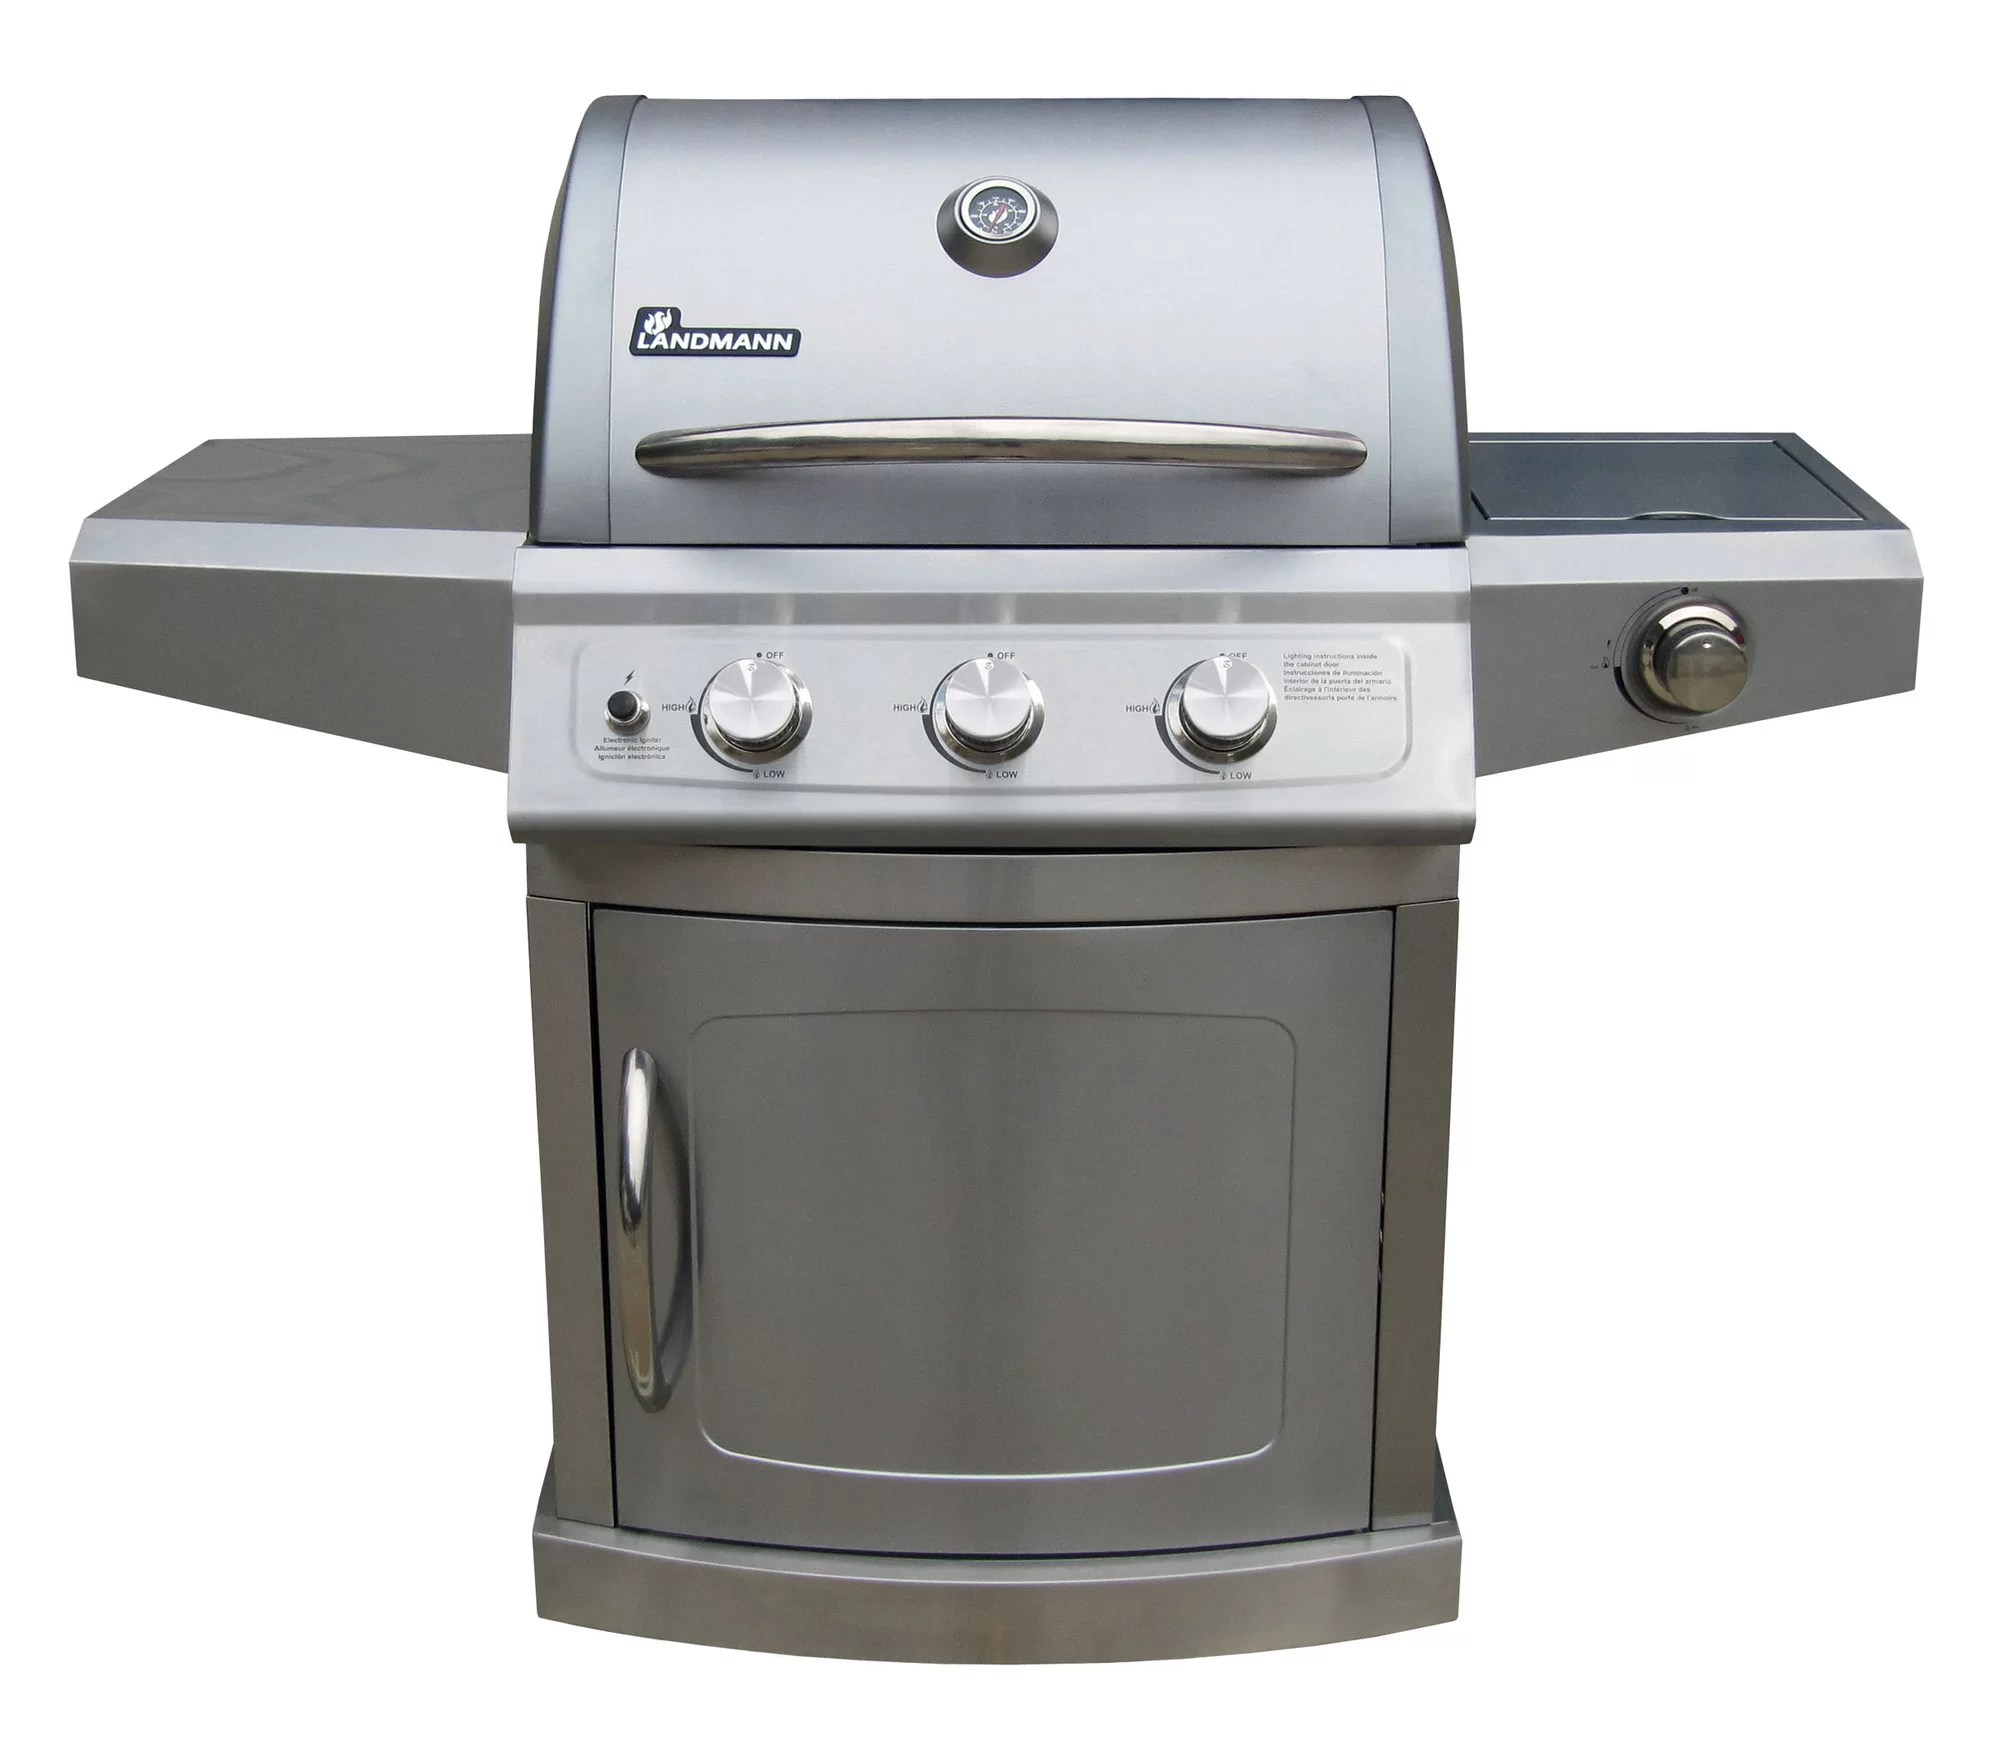 Landmann Gasgrill Portable Landmann Falcon Series 3 Burner Gas Grill With Side Burner